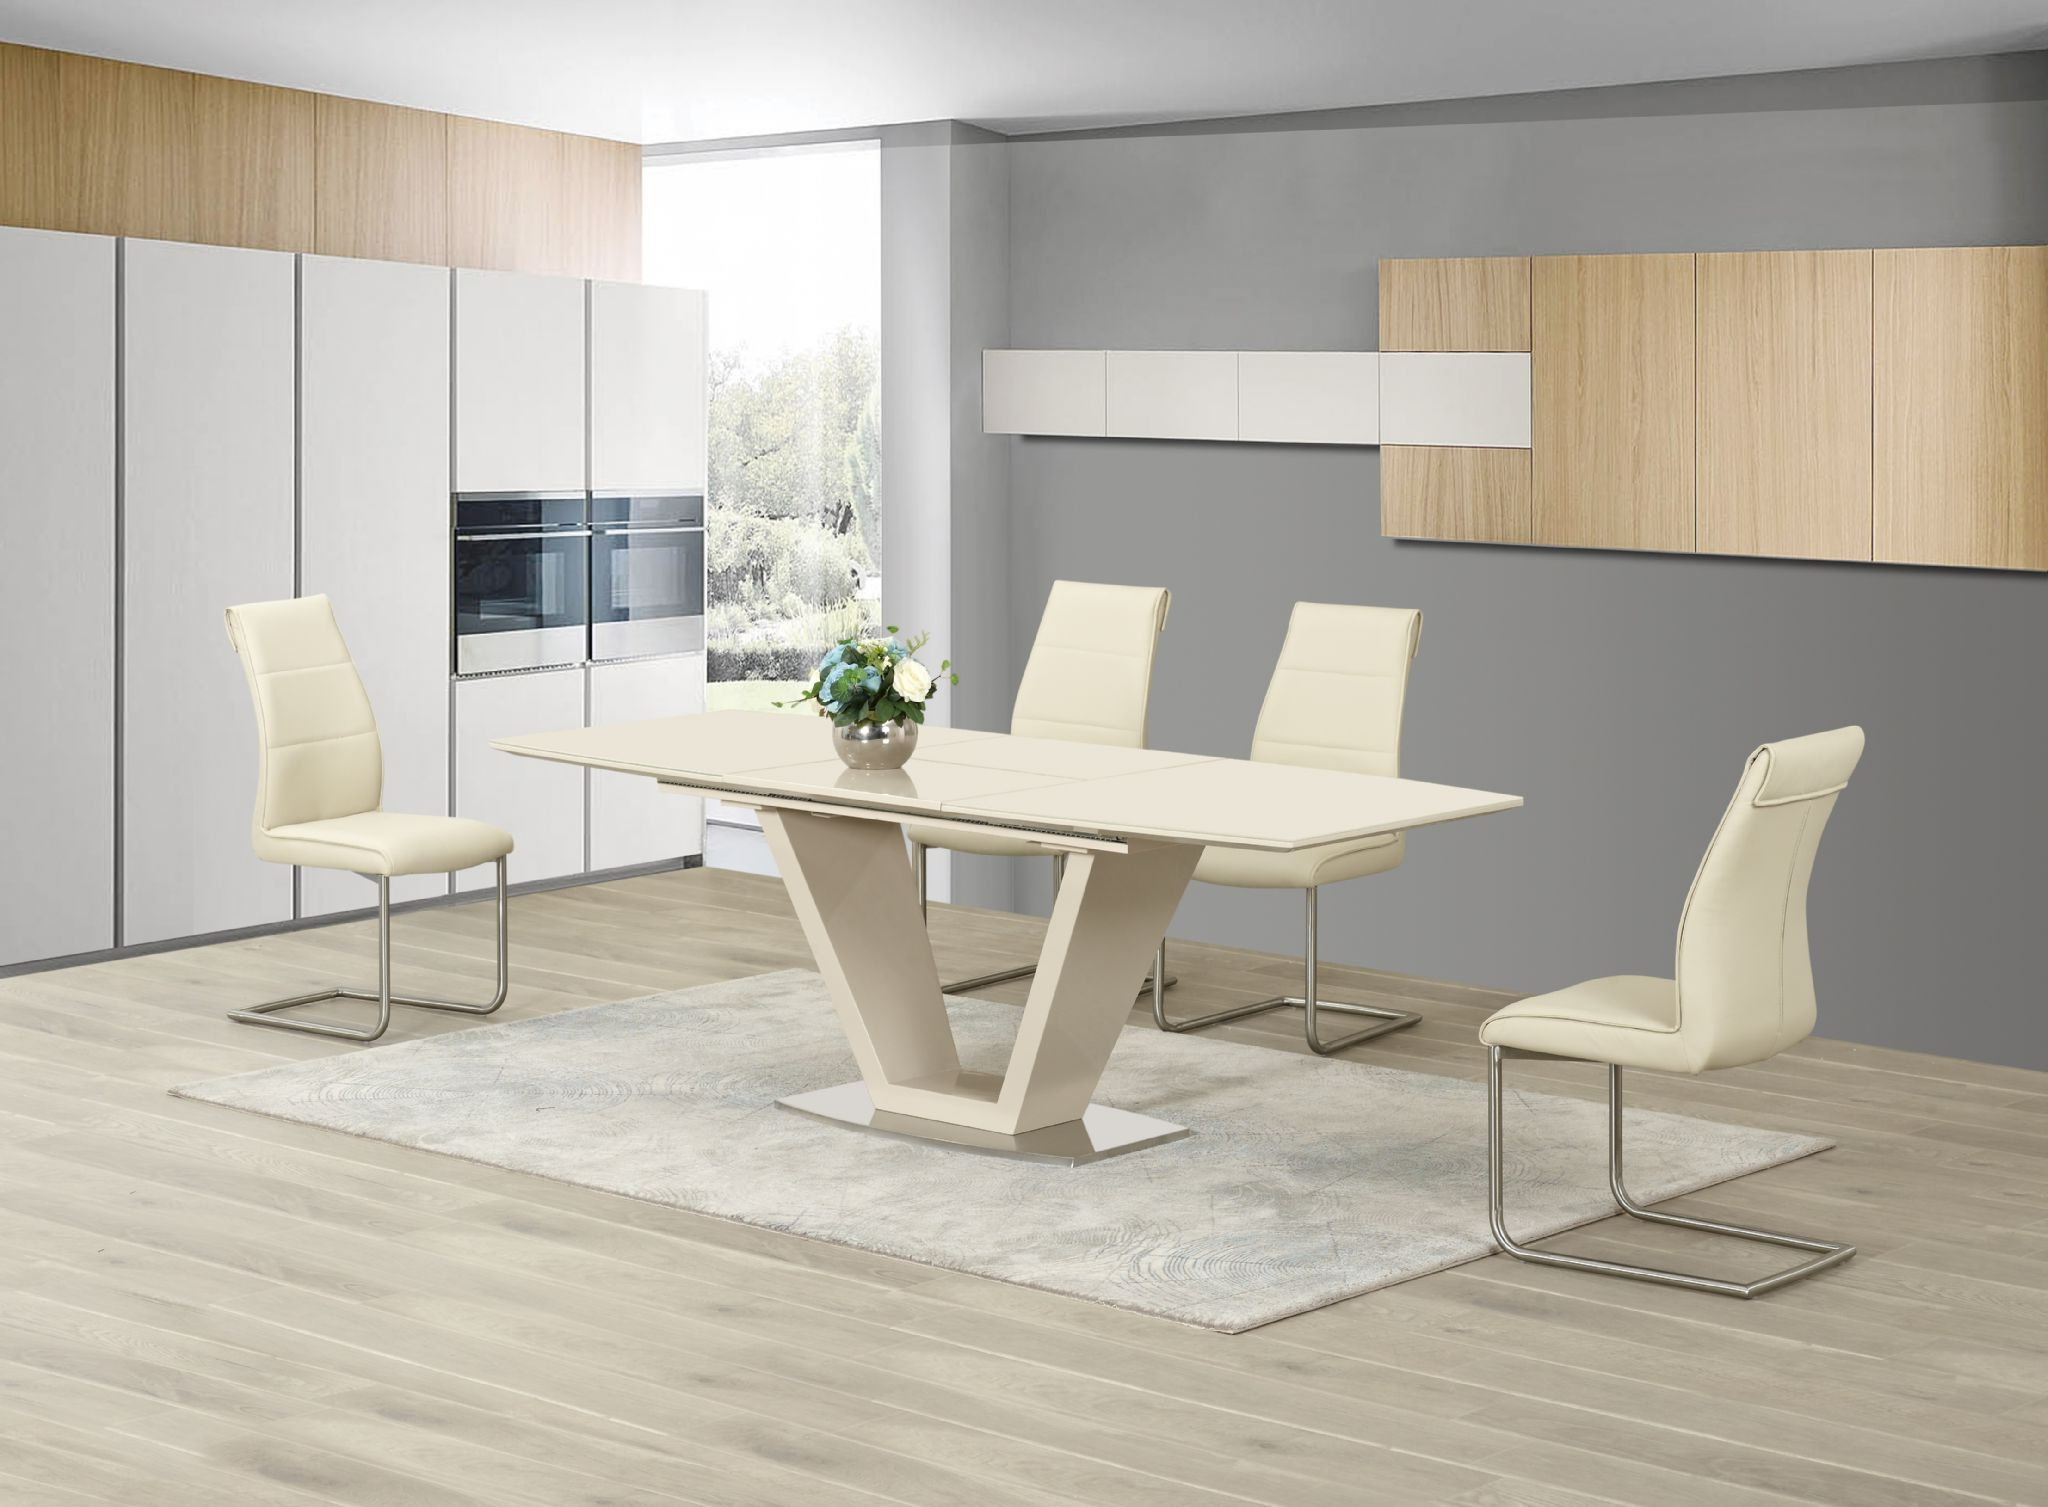 Famous Floris Cream Extending Dining Table High Gloss Inside Modern Glass Top Extension Dining Tables In Matte Black (View 9 of 30)